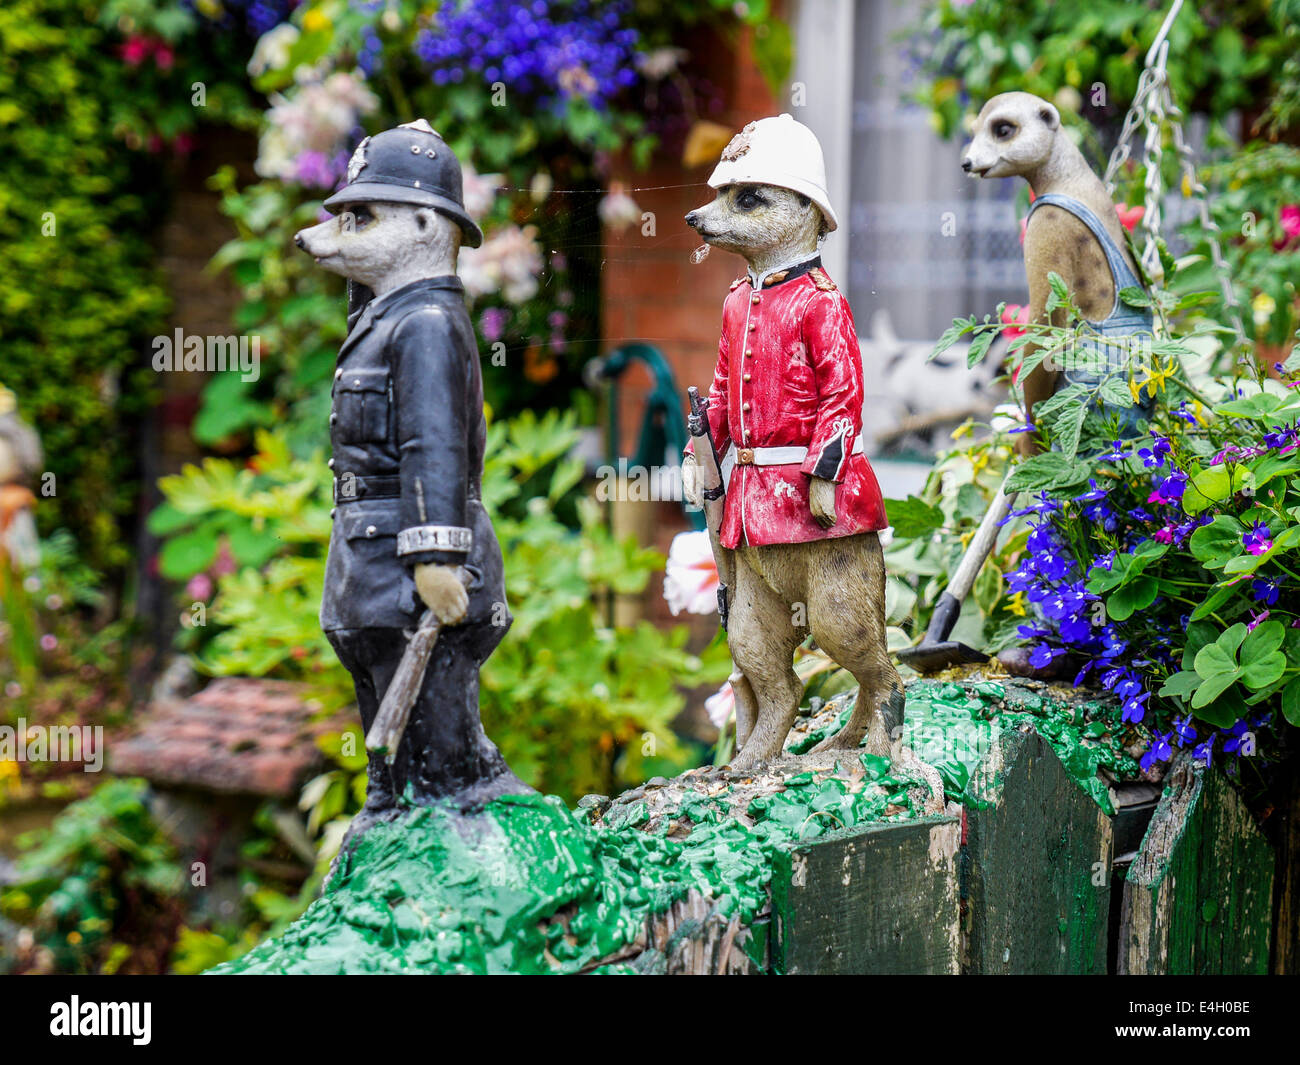 Meerkat ornaments policeman and fireman on a wall in a for Quirky ornaments uk